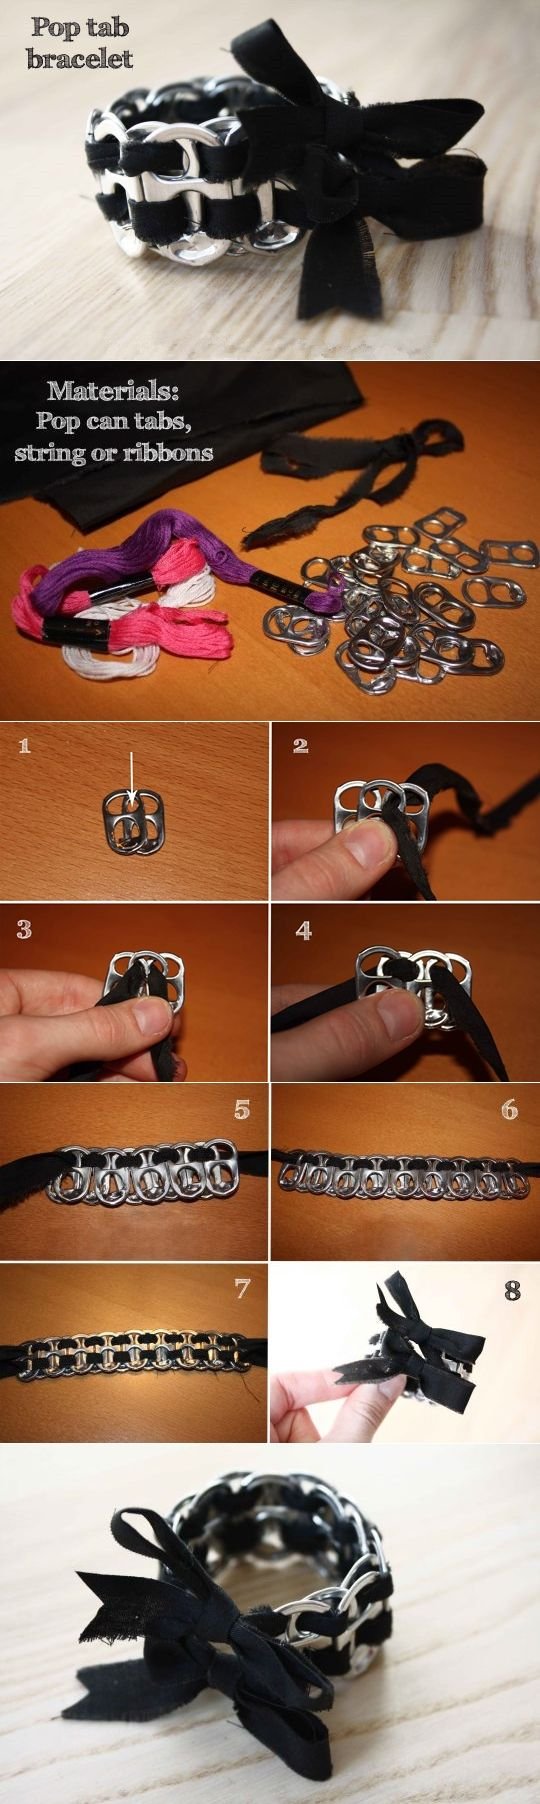 Pop tab bracelet tutorial